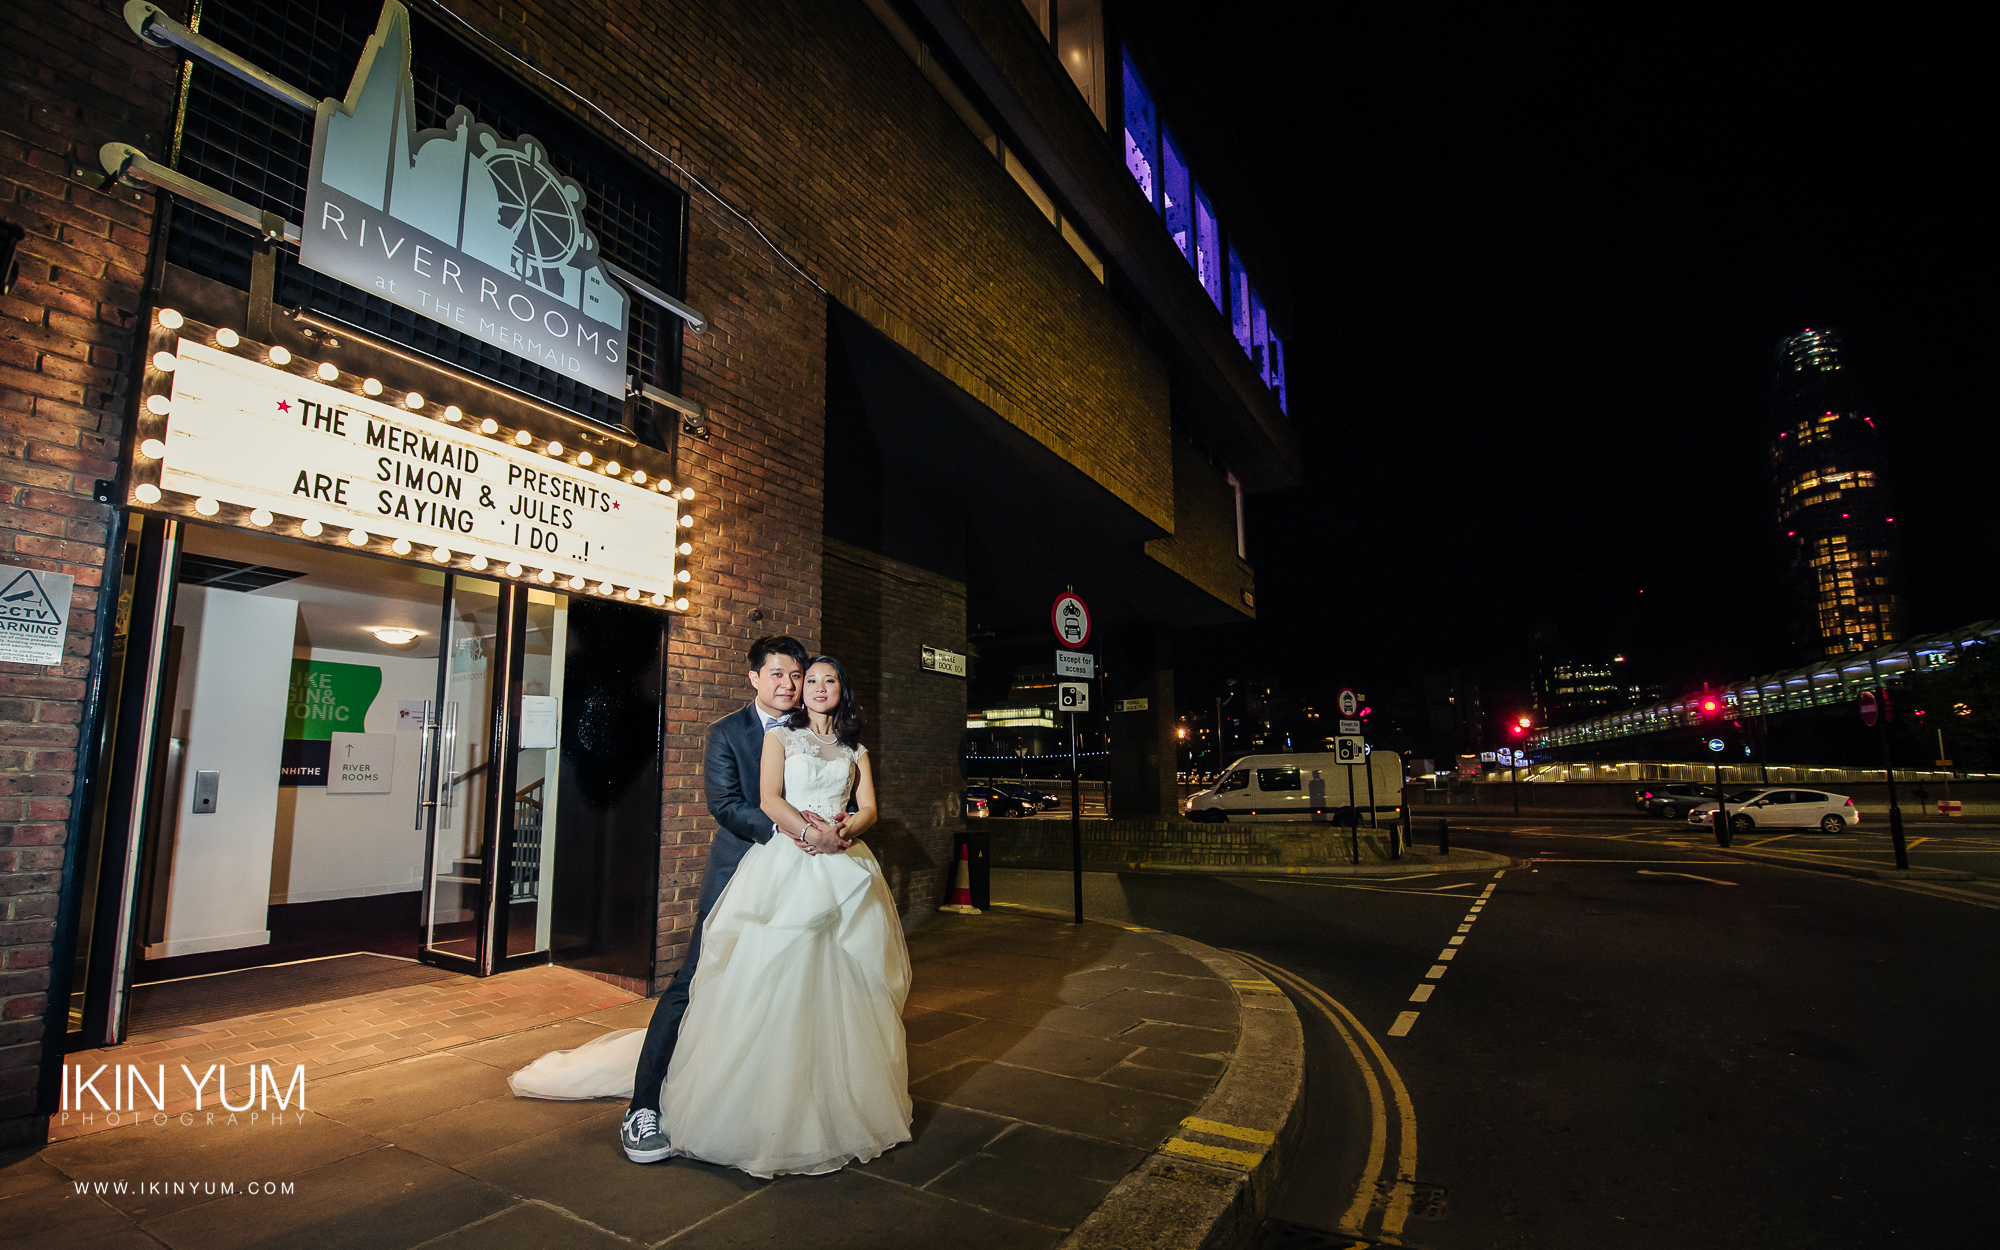 The Mermaid River Room Wedding - London Chinese Wedding Photographer